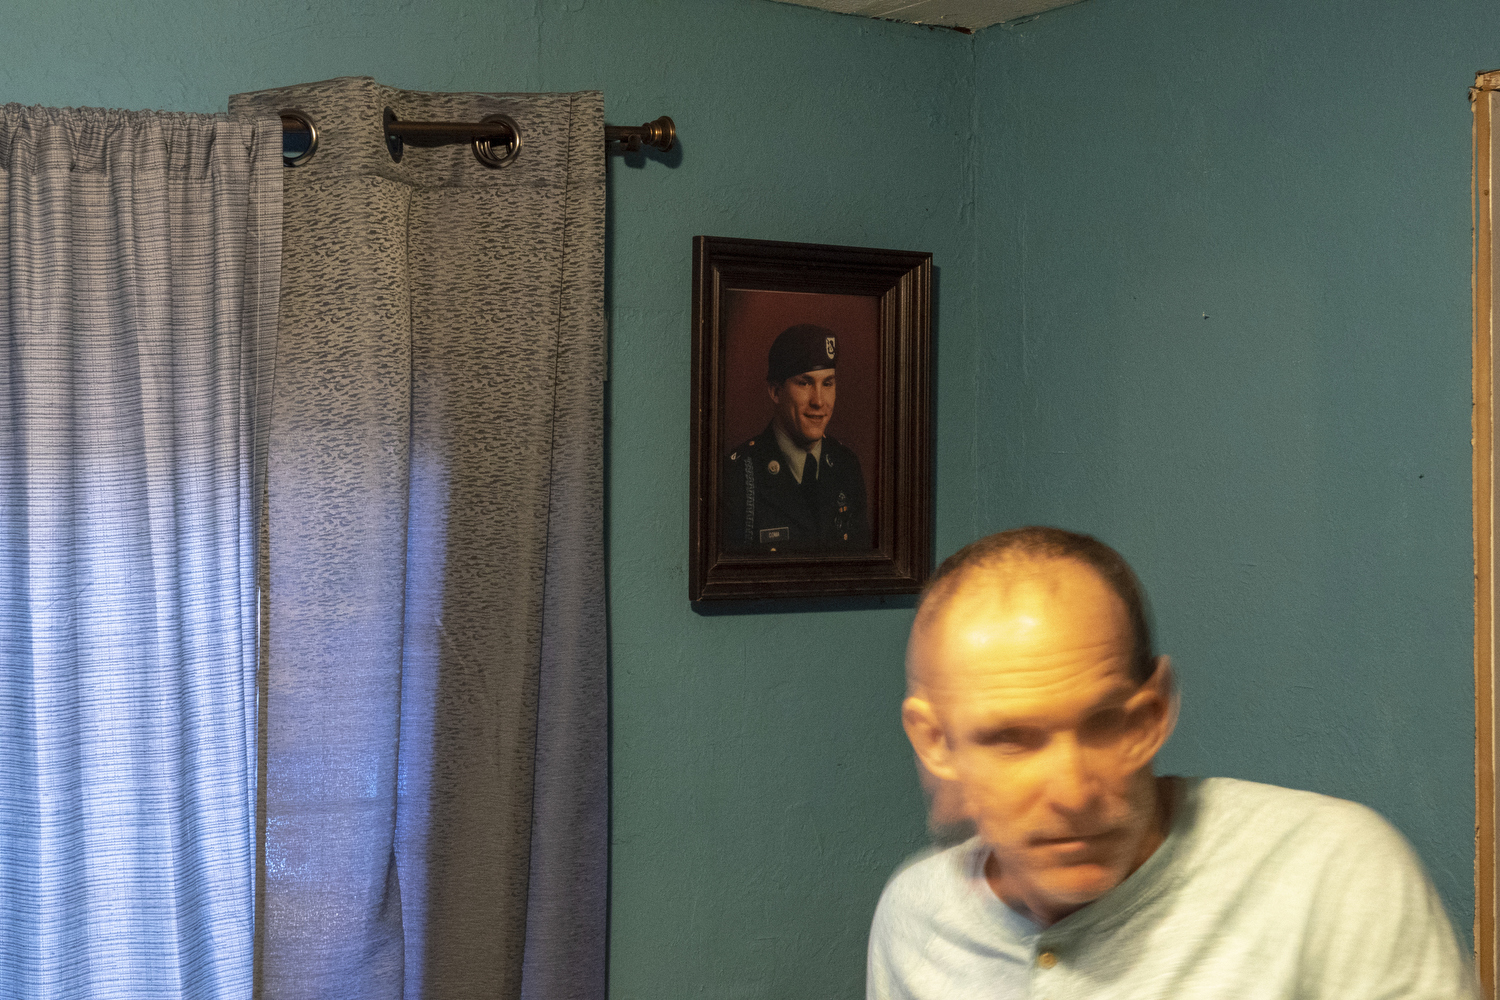 2019. Shelton, Washington. USA.  Chuck Coma in his room at his mother's home.